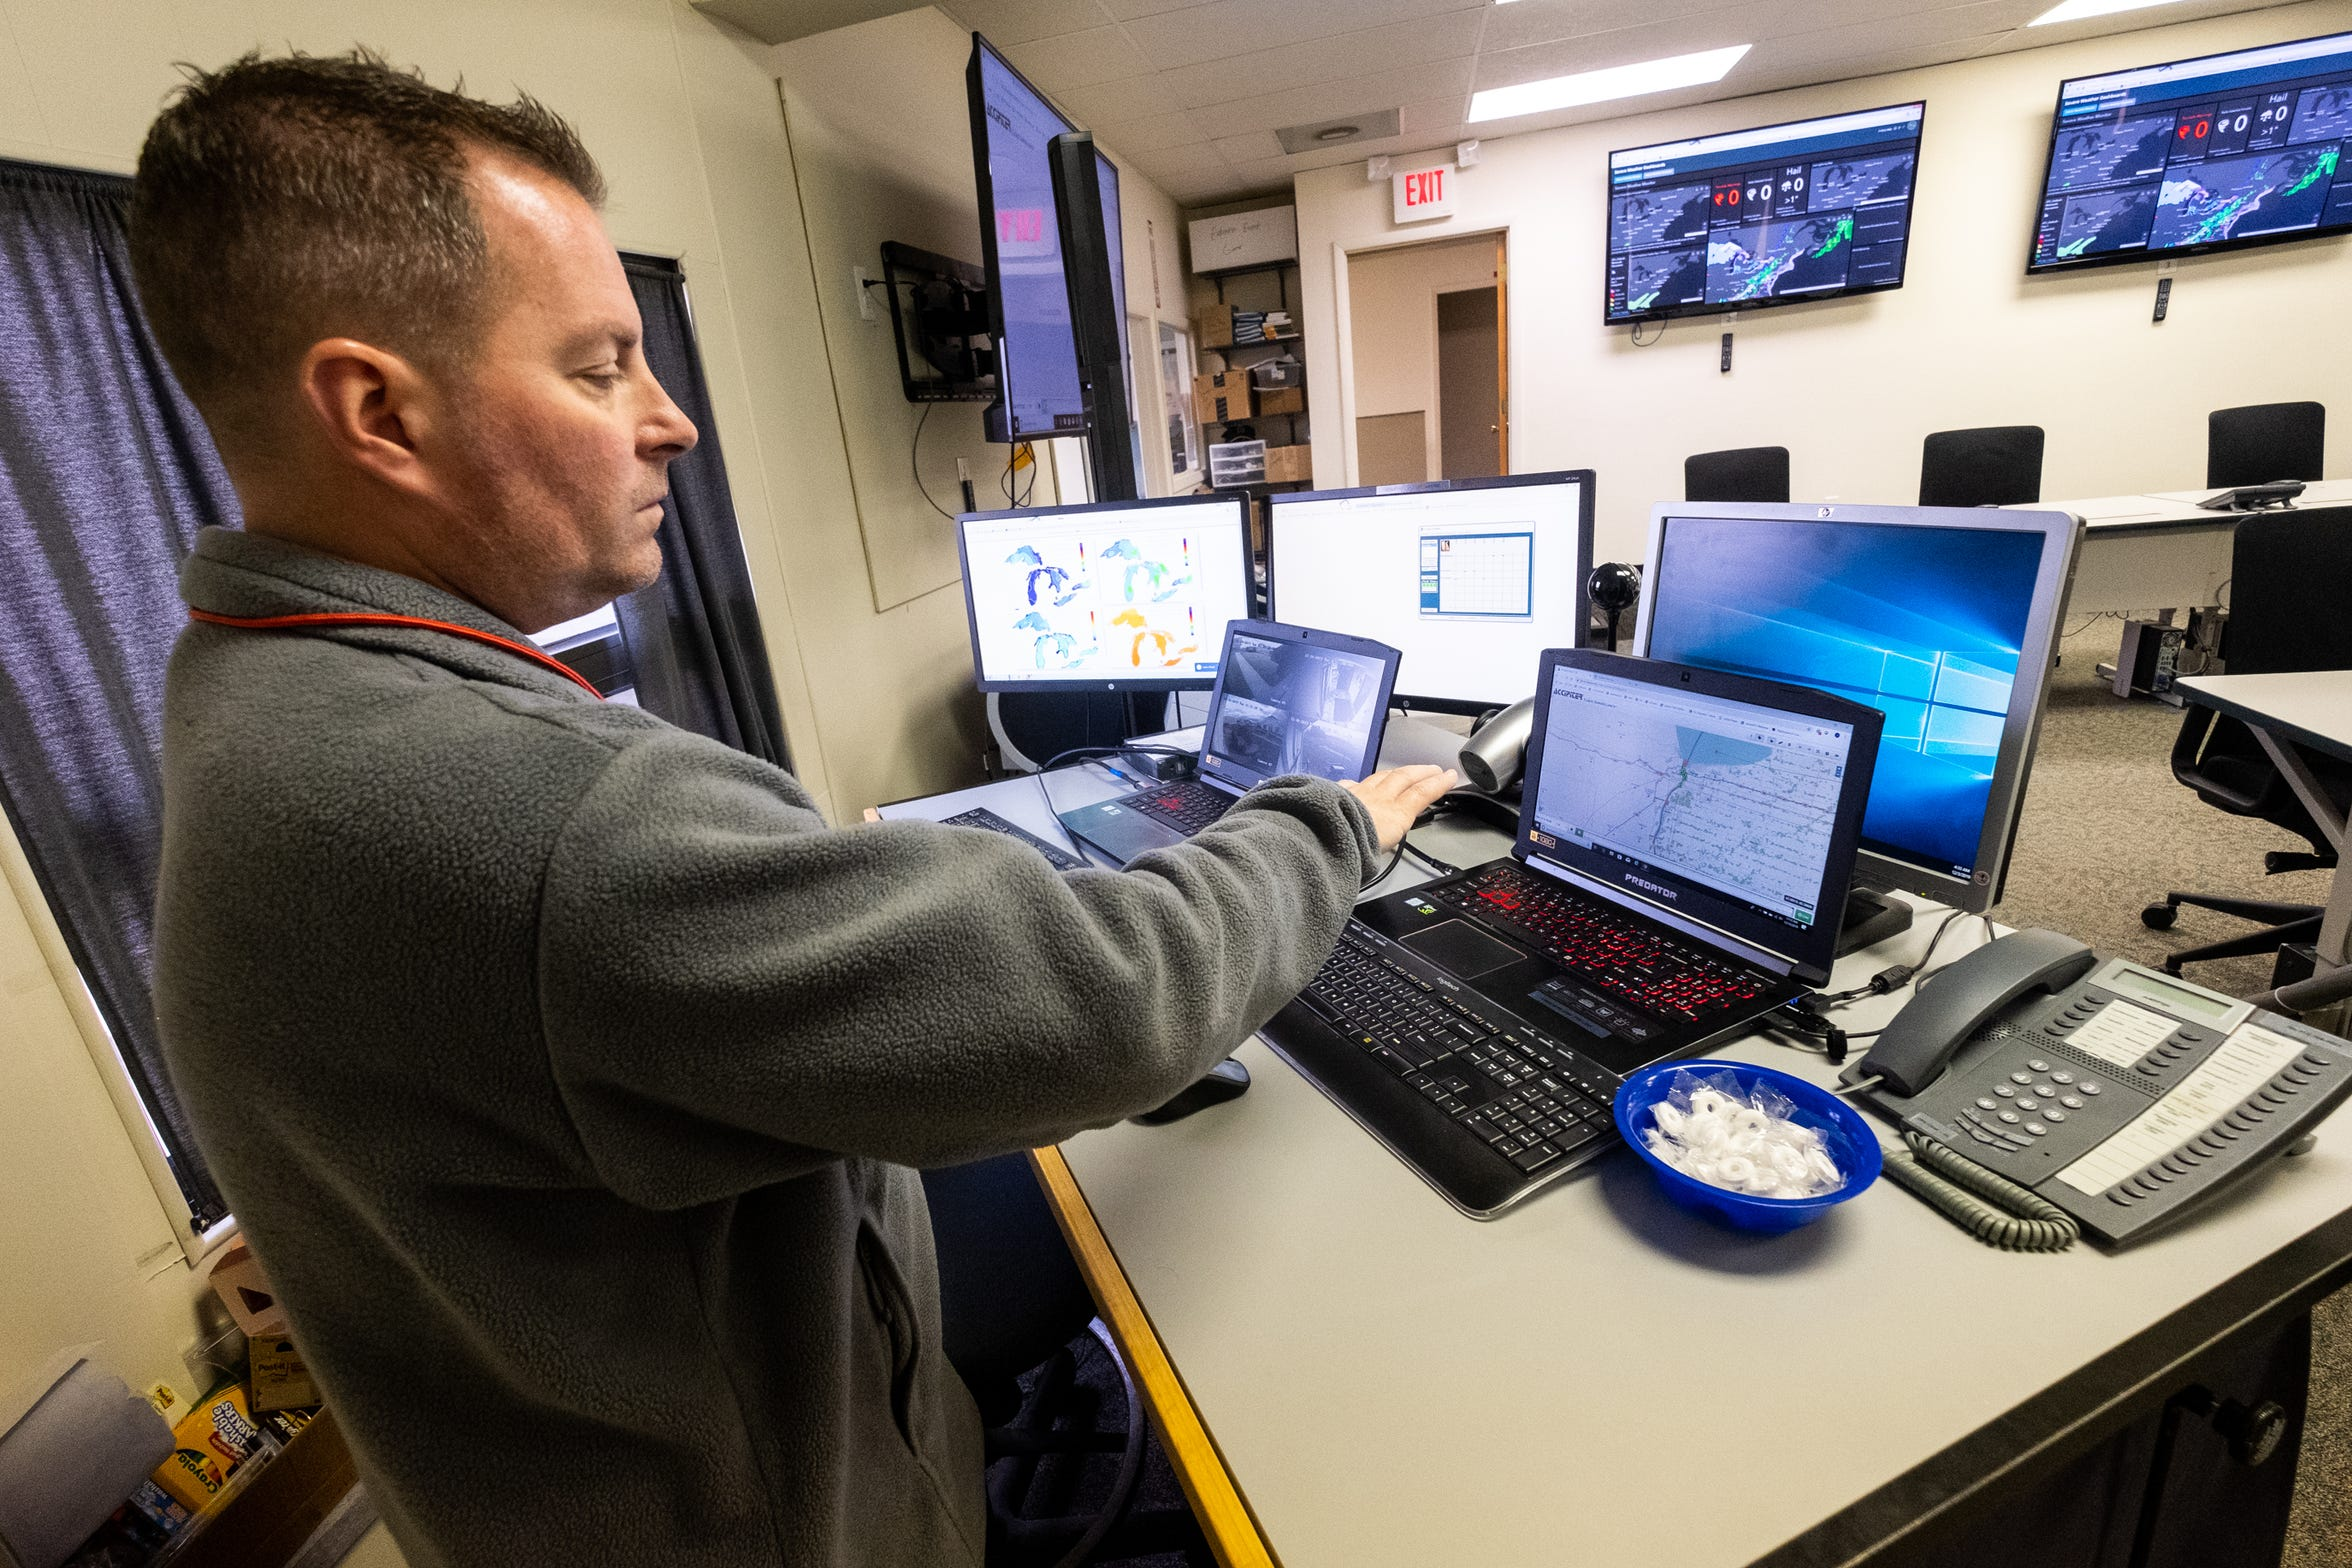 St. Clair County Emergency Management Director Justin Westmiller loads displays showing weather and general forecast data and other critical information in St. Clair County's Emergency Management Office Tuesday, Dec. 10, 2019, in Kimball Township.